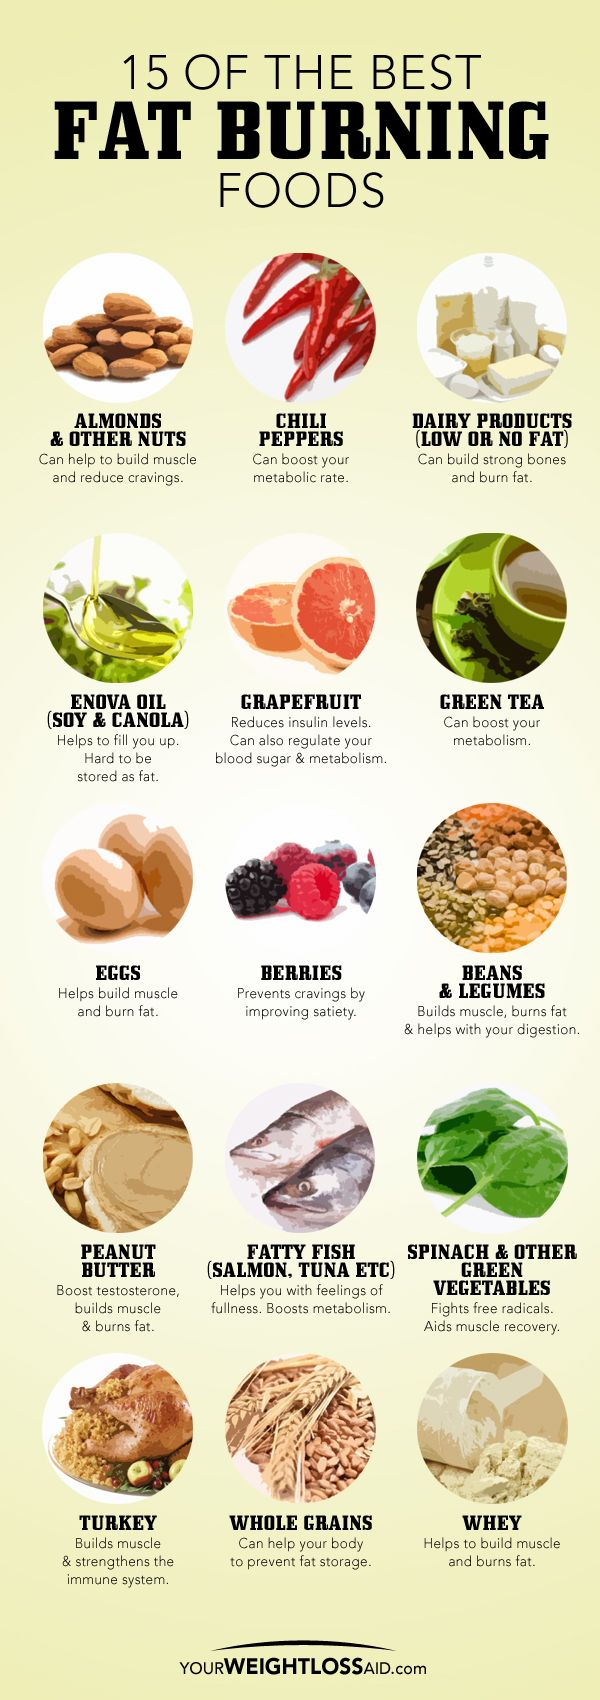 What is the fat loss factor diet